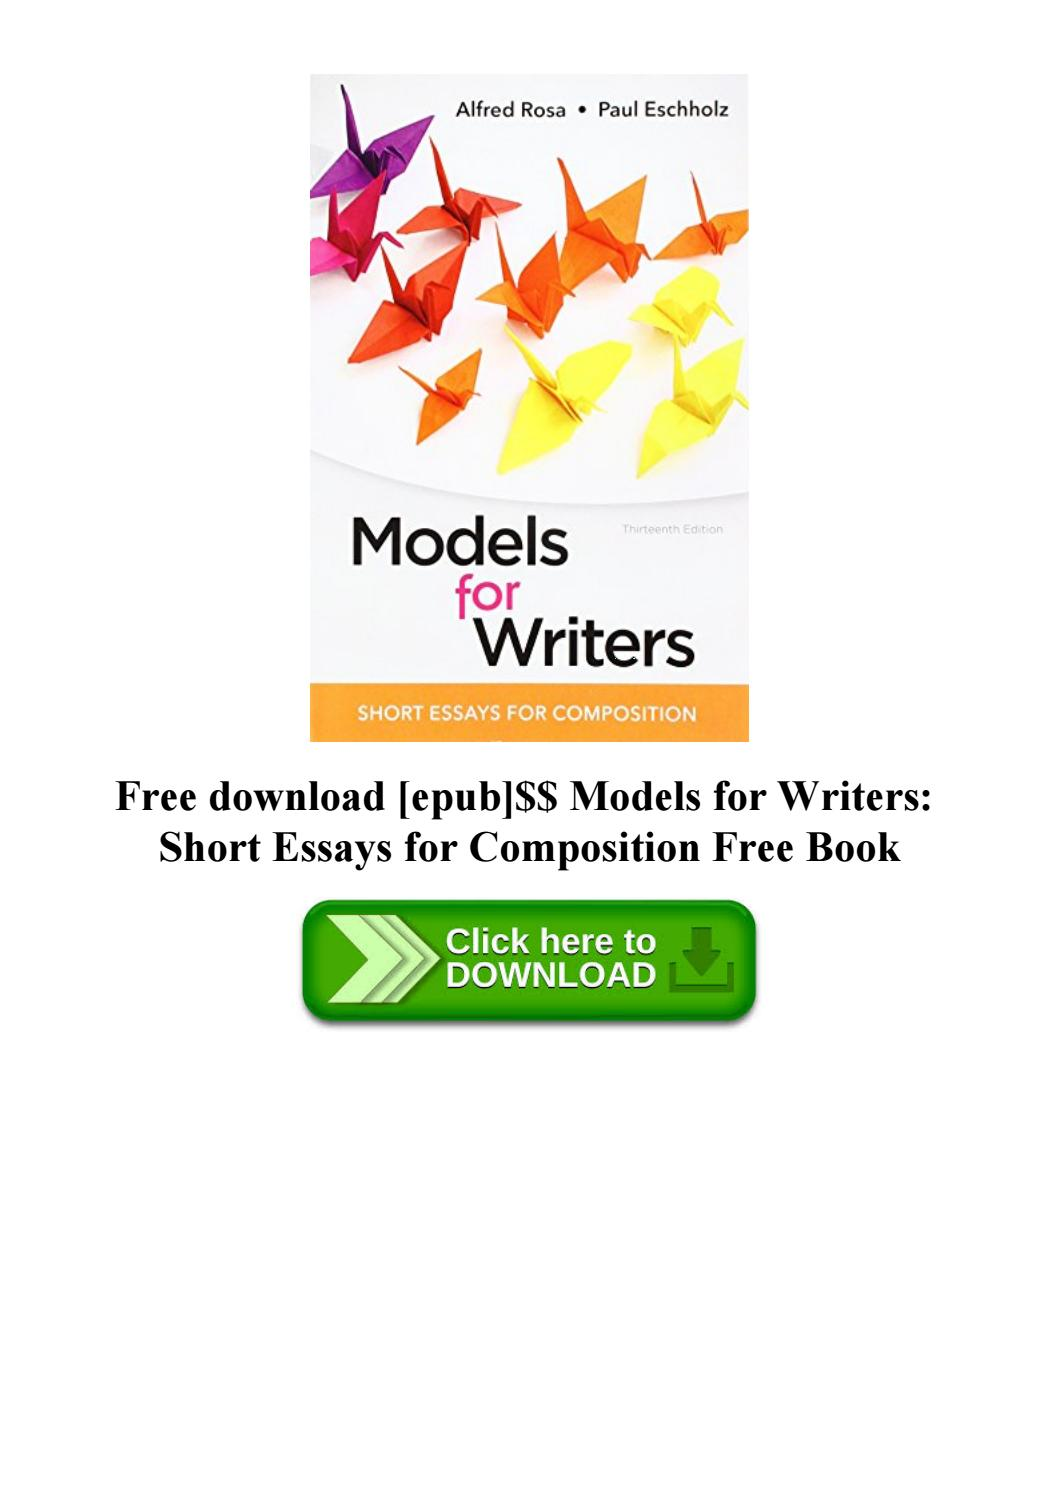 017 Page 1 Essay Example Models For Writers Short Essays Singular Composition 12th Edition Pdf 13th Full